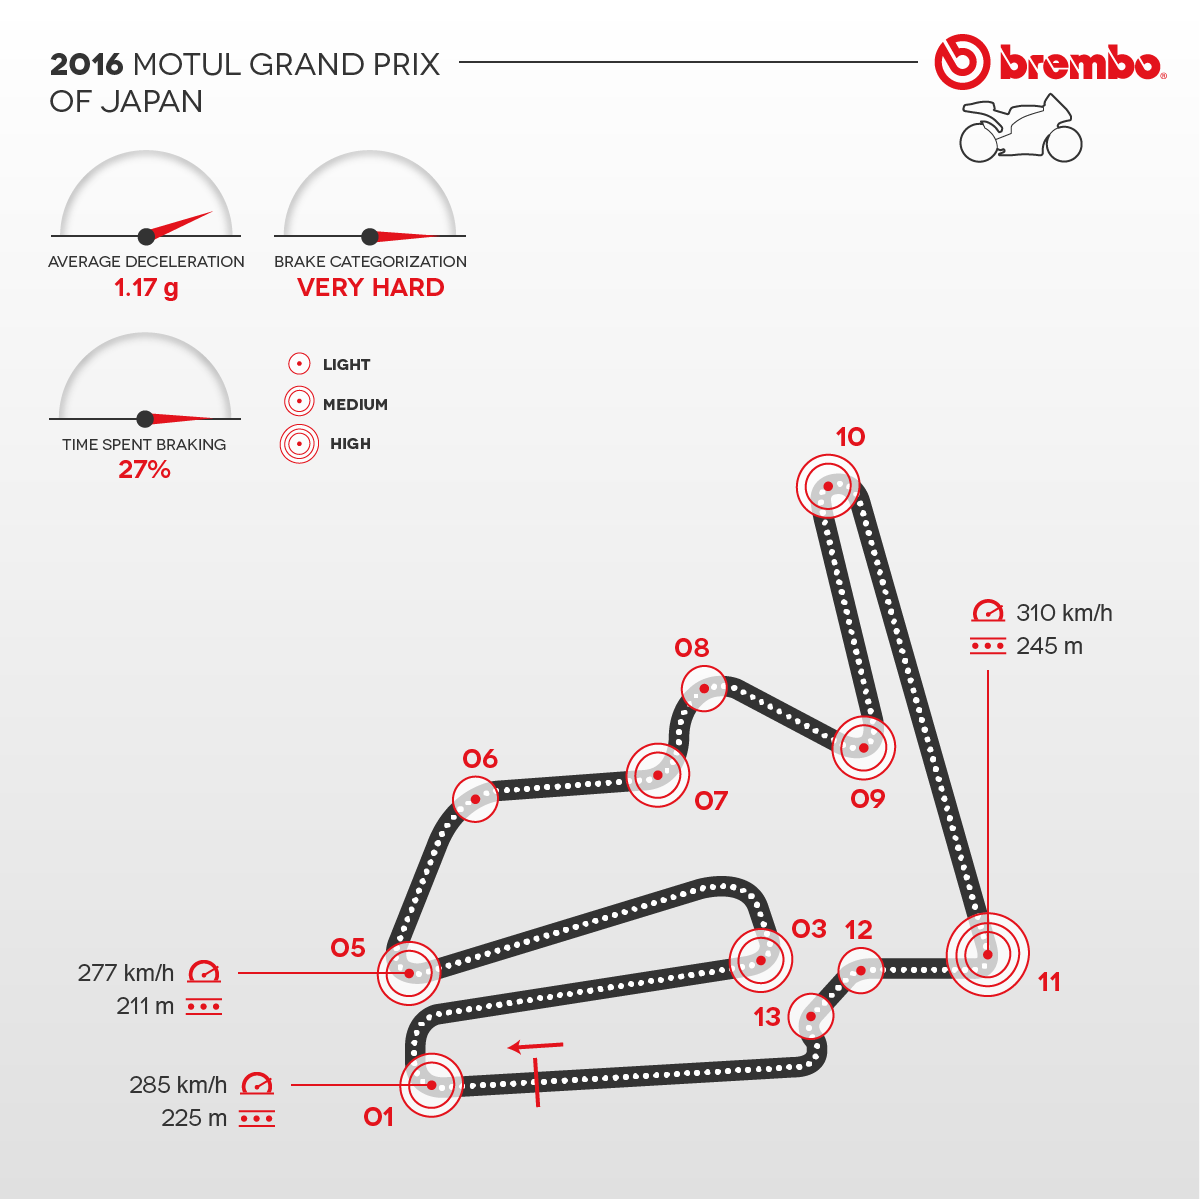 Motogp 2016 The Japanese According To Brembo Moto G Circuit Diagram Detailed Representation Of With Curves Detail